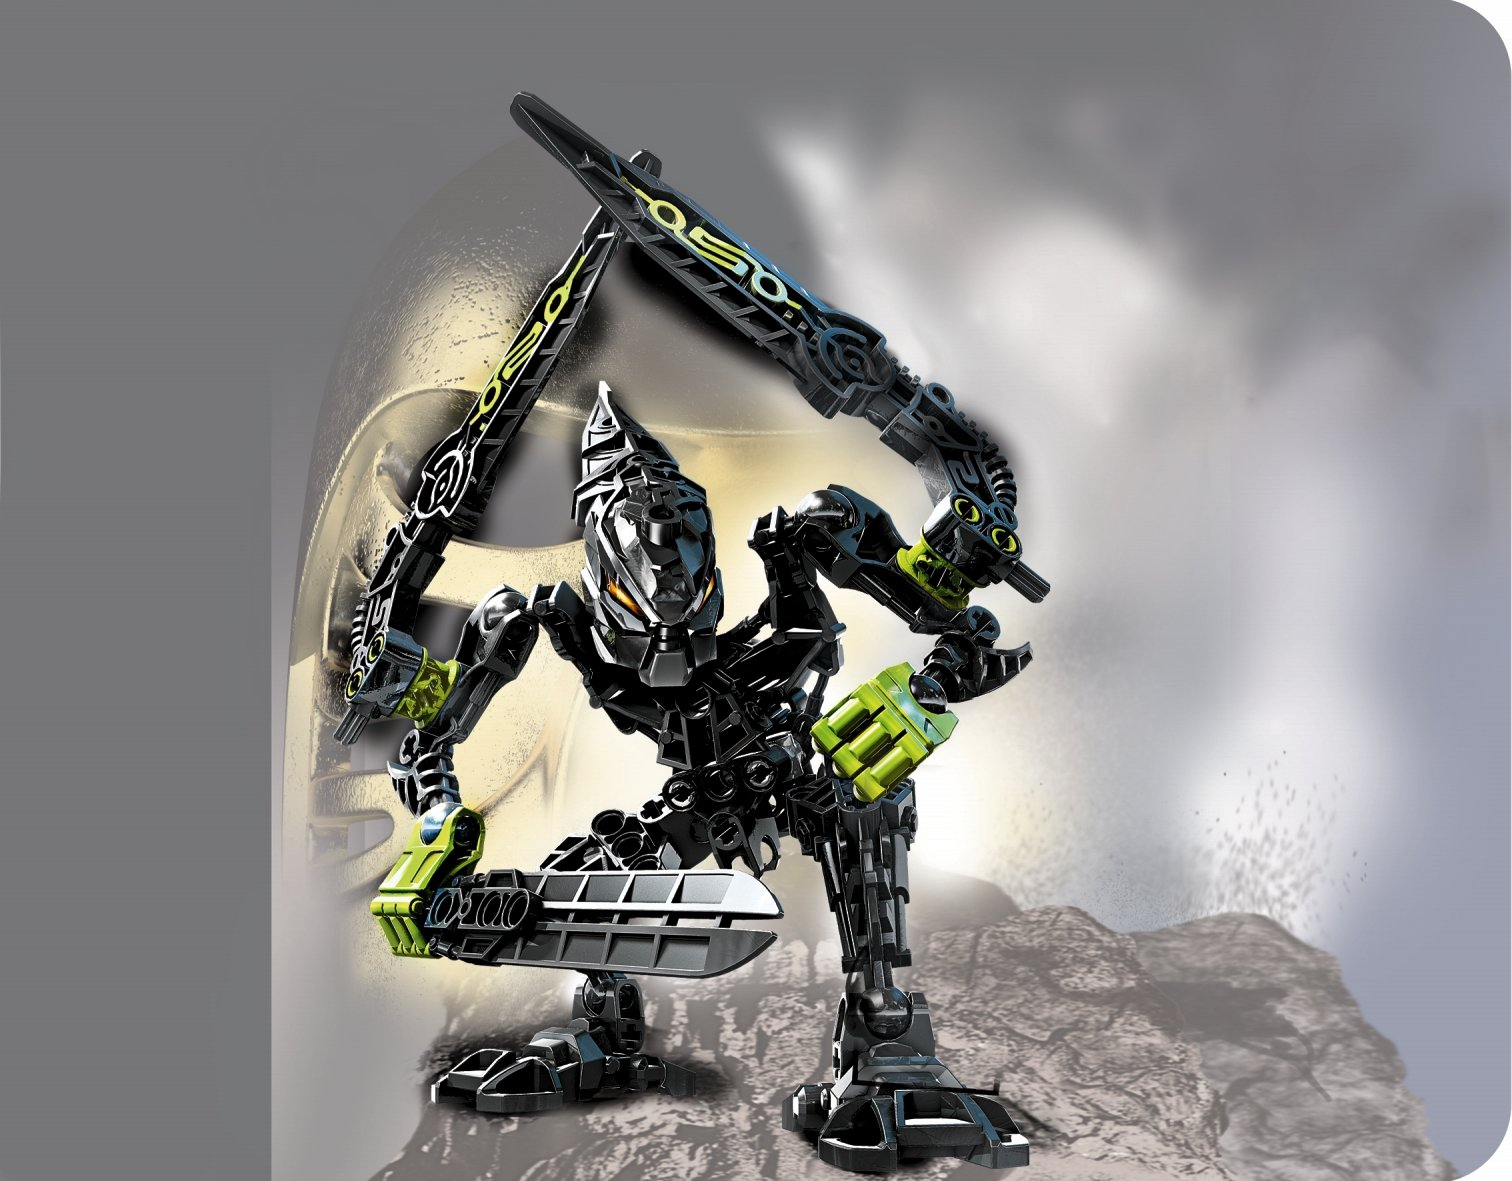 Lego Skrall 7136 Bionicle spare parts Black wings 64263 sold individually